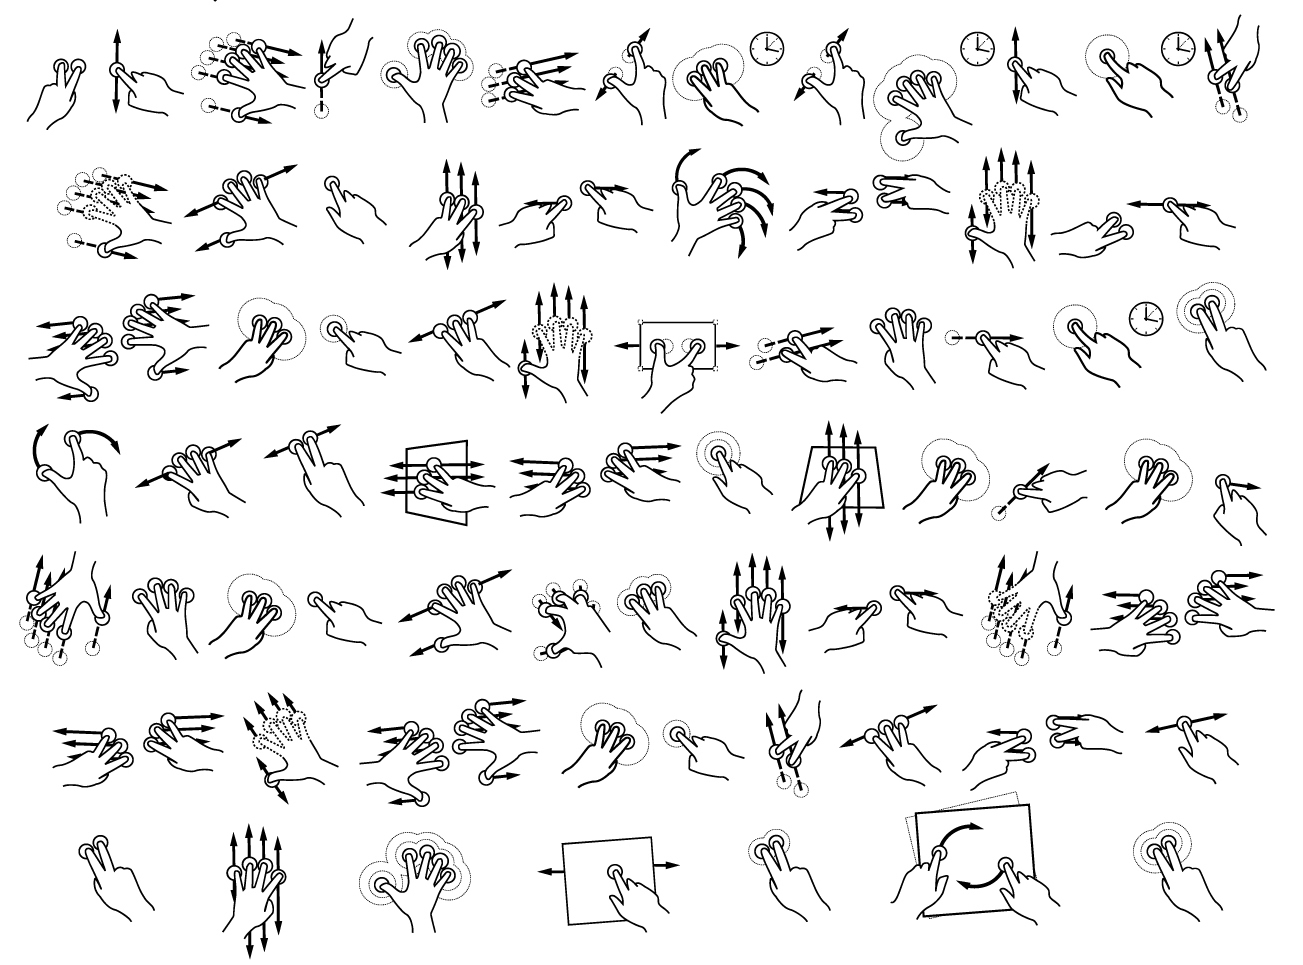 gestures:touch:gestures2d_inverted.jpg